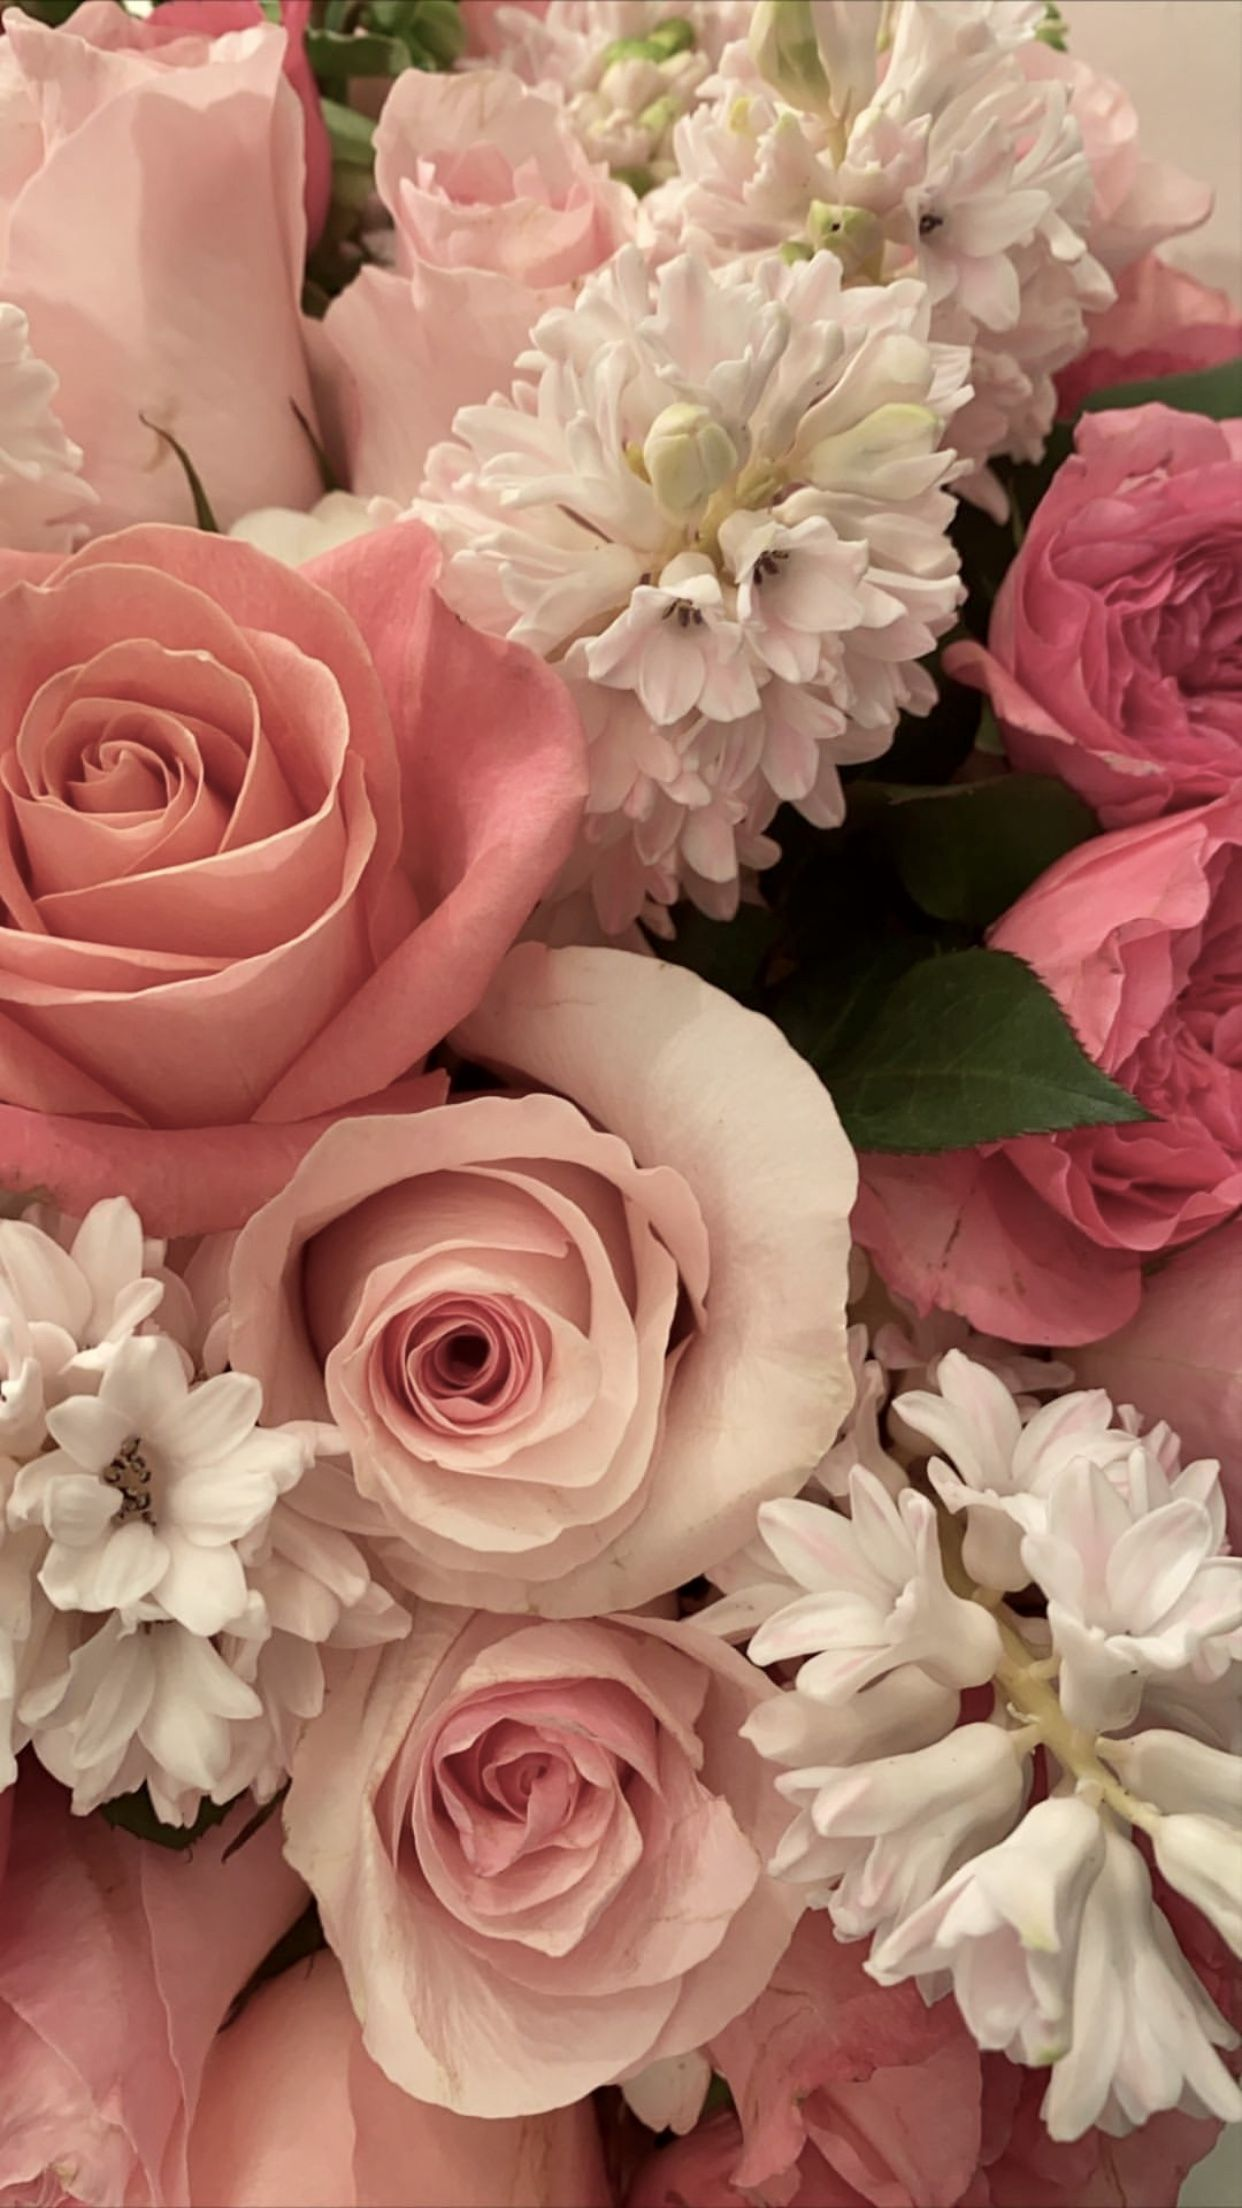 Cute Rose Wallpaper Rose Wallpaper Pink Floral Background White Roses Background